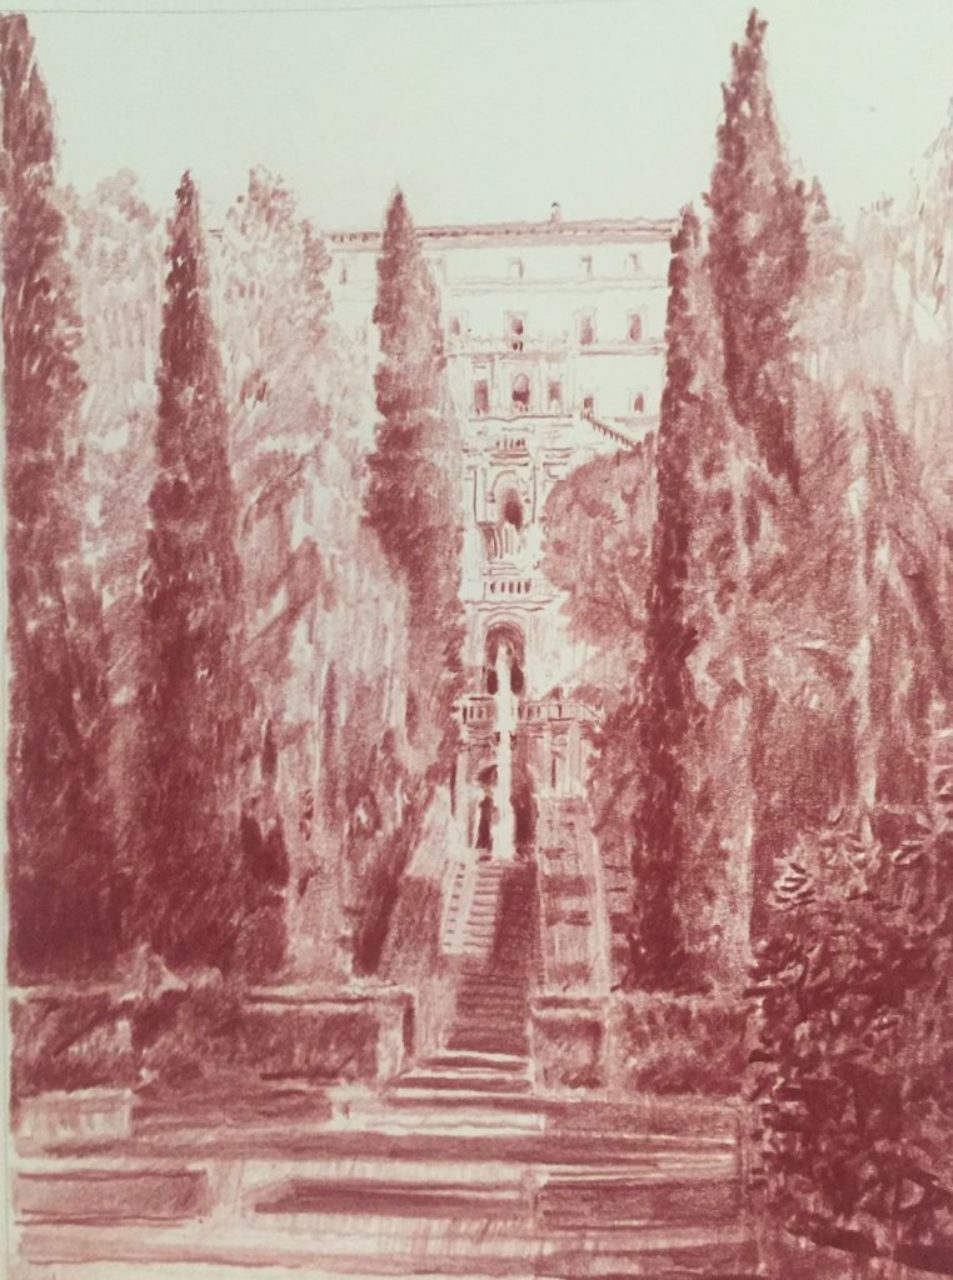 Sanguine drawing of Villa d'Este by Christopher H. Browne Rome Drawing Tour student Martin Burns